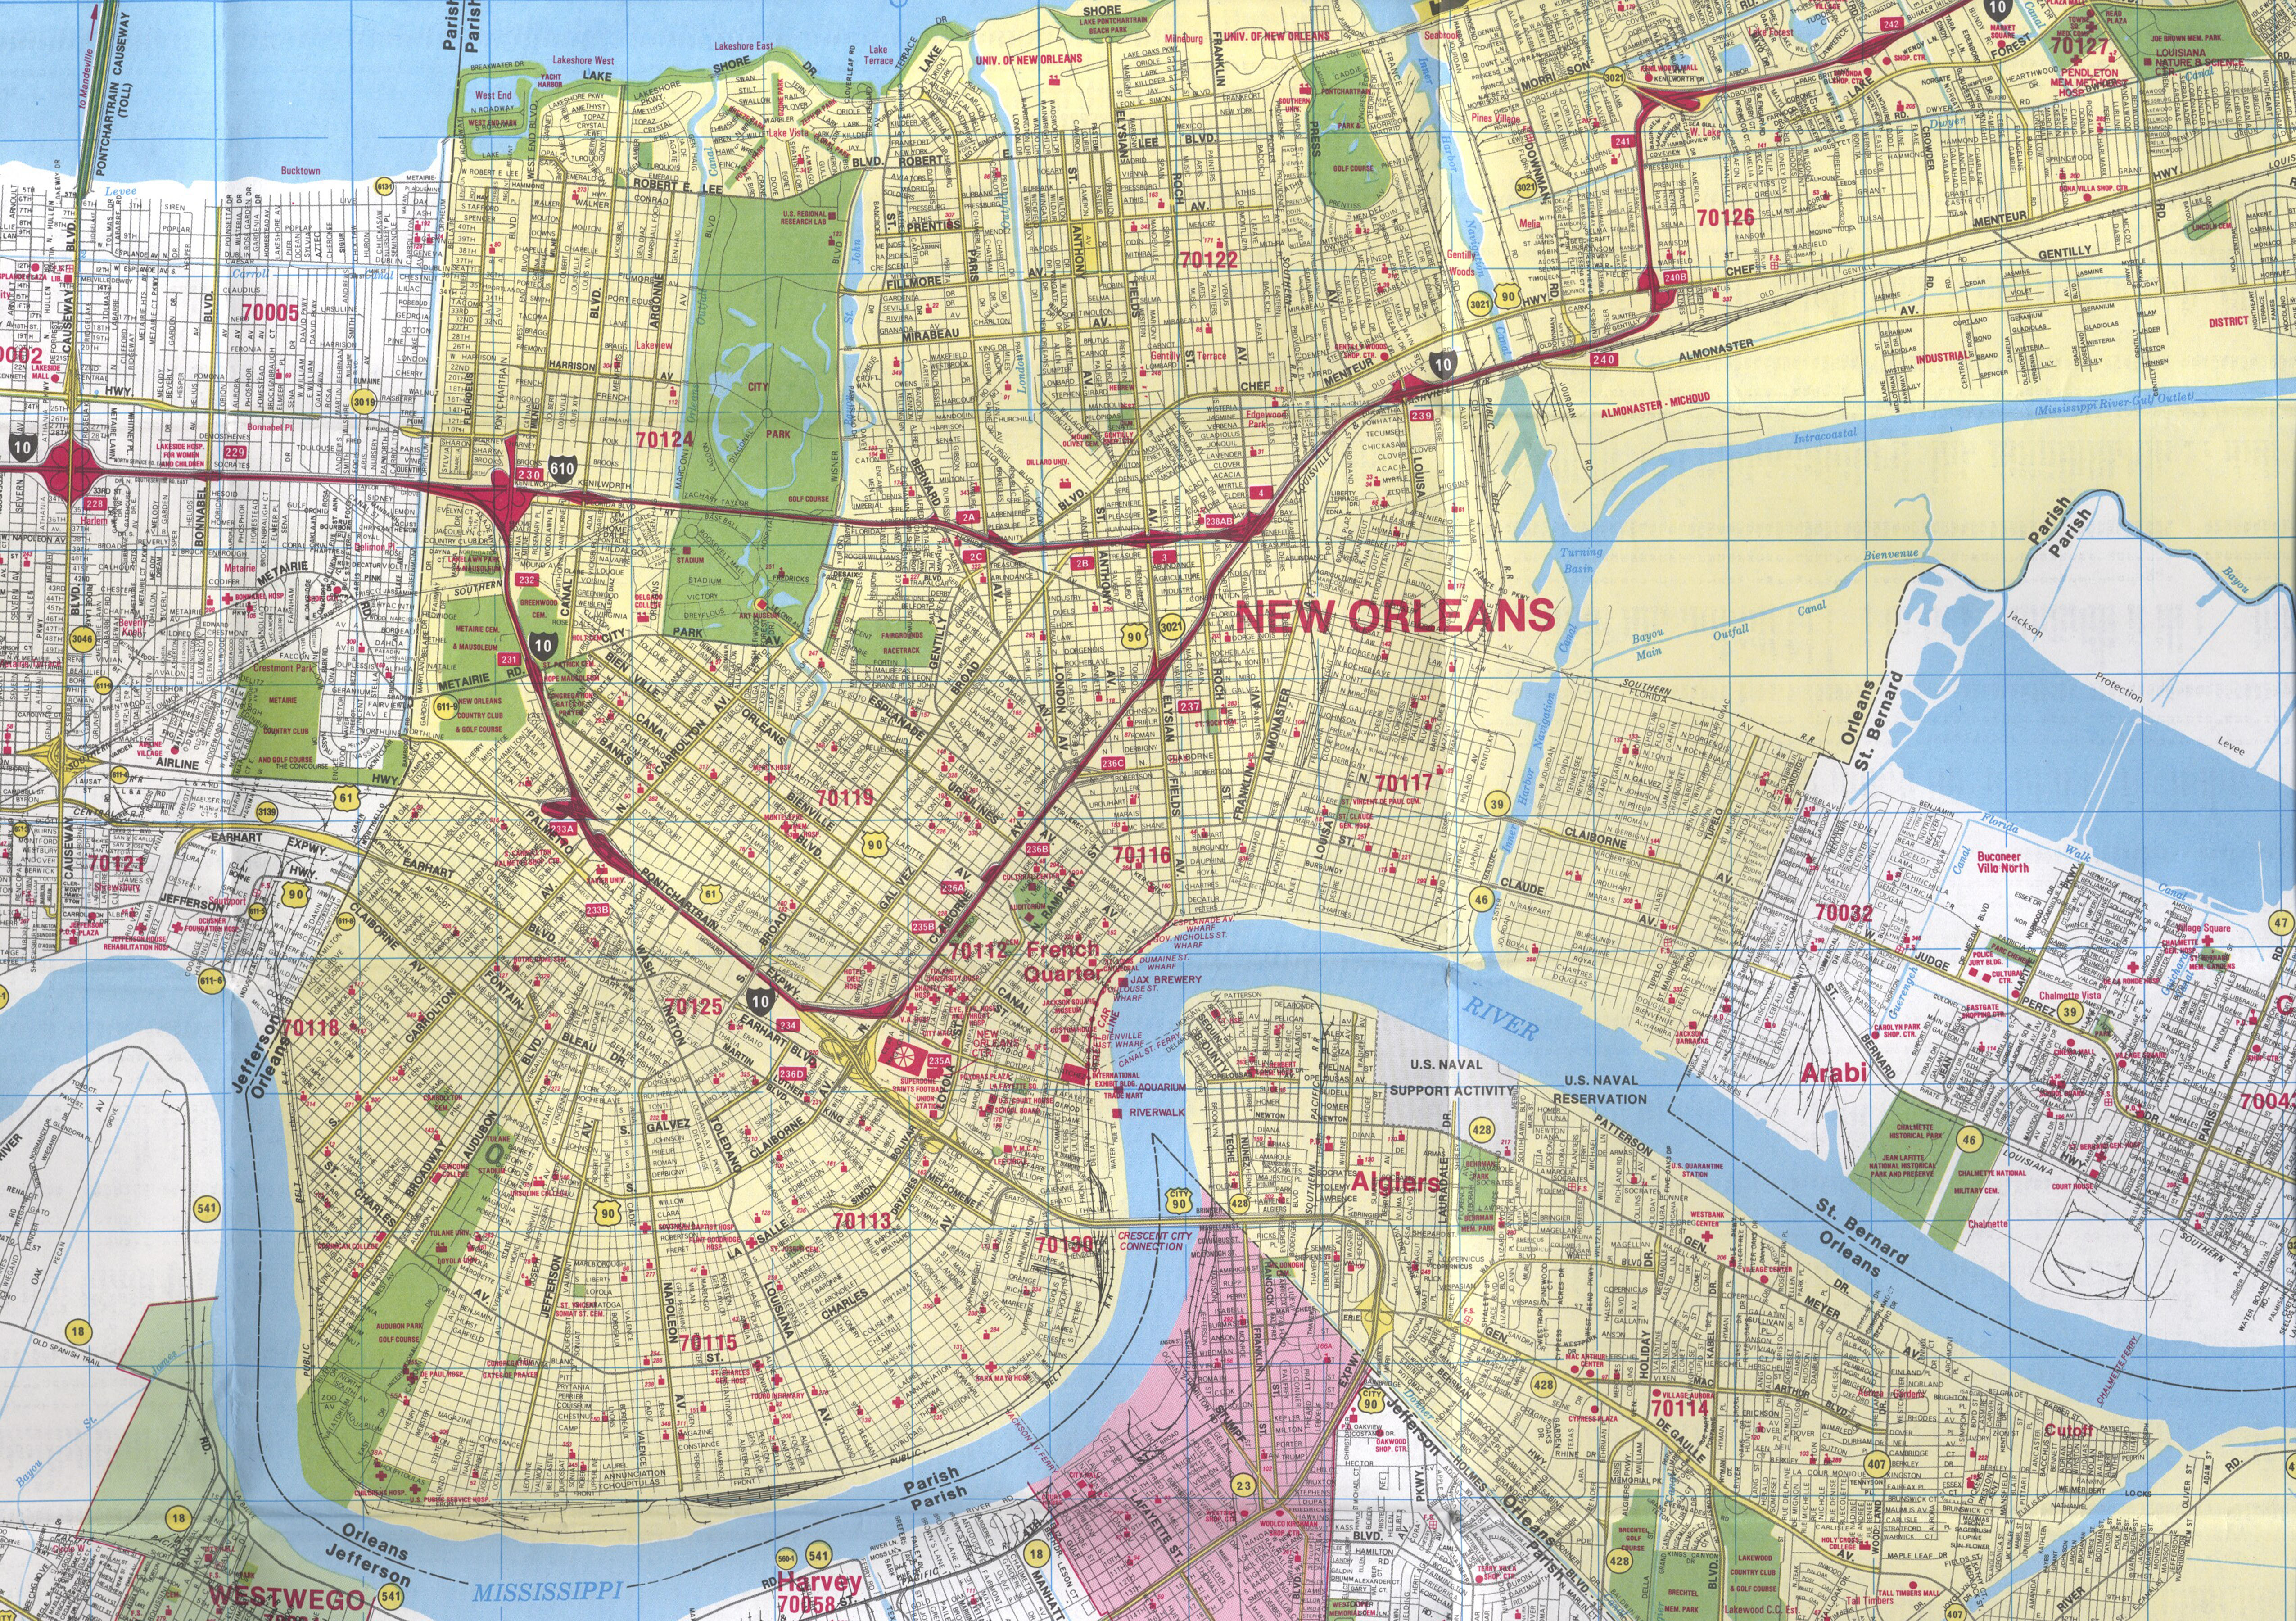 New Orleans Street Map Pdf Index of /afs/athena/course/4/4.196/OldFiles/